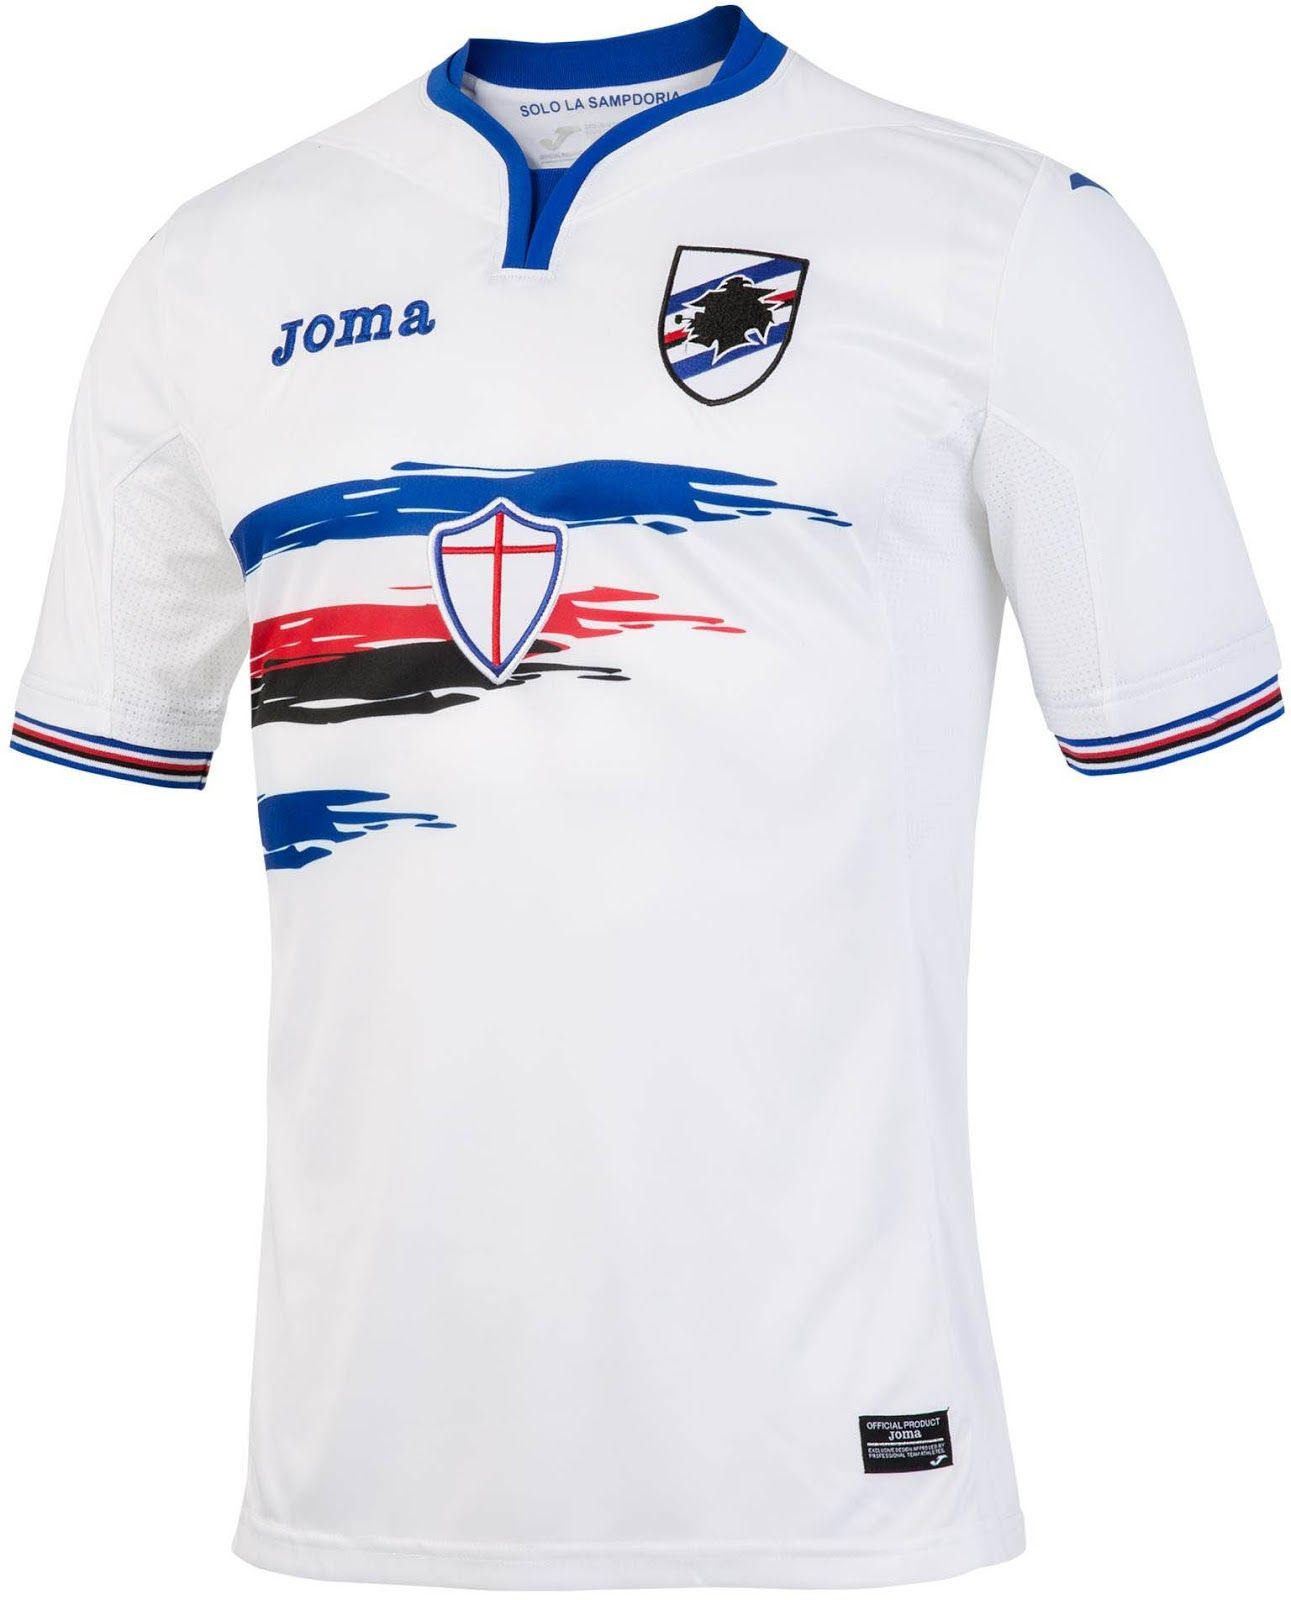 eac7de5b4 Sampdoria 16-17 Home and Away Kits Released - Footy Headlines ...